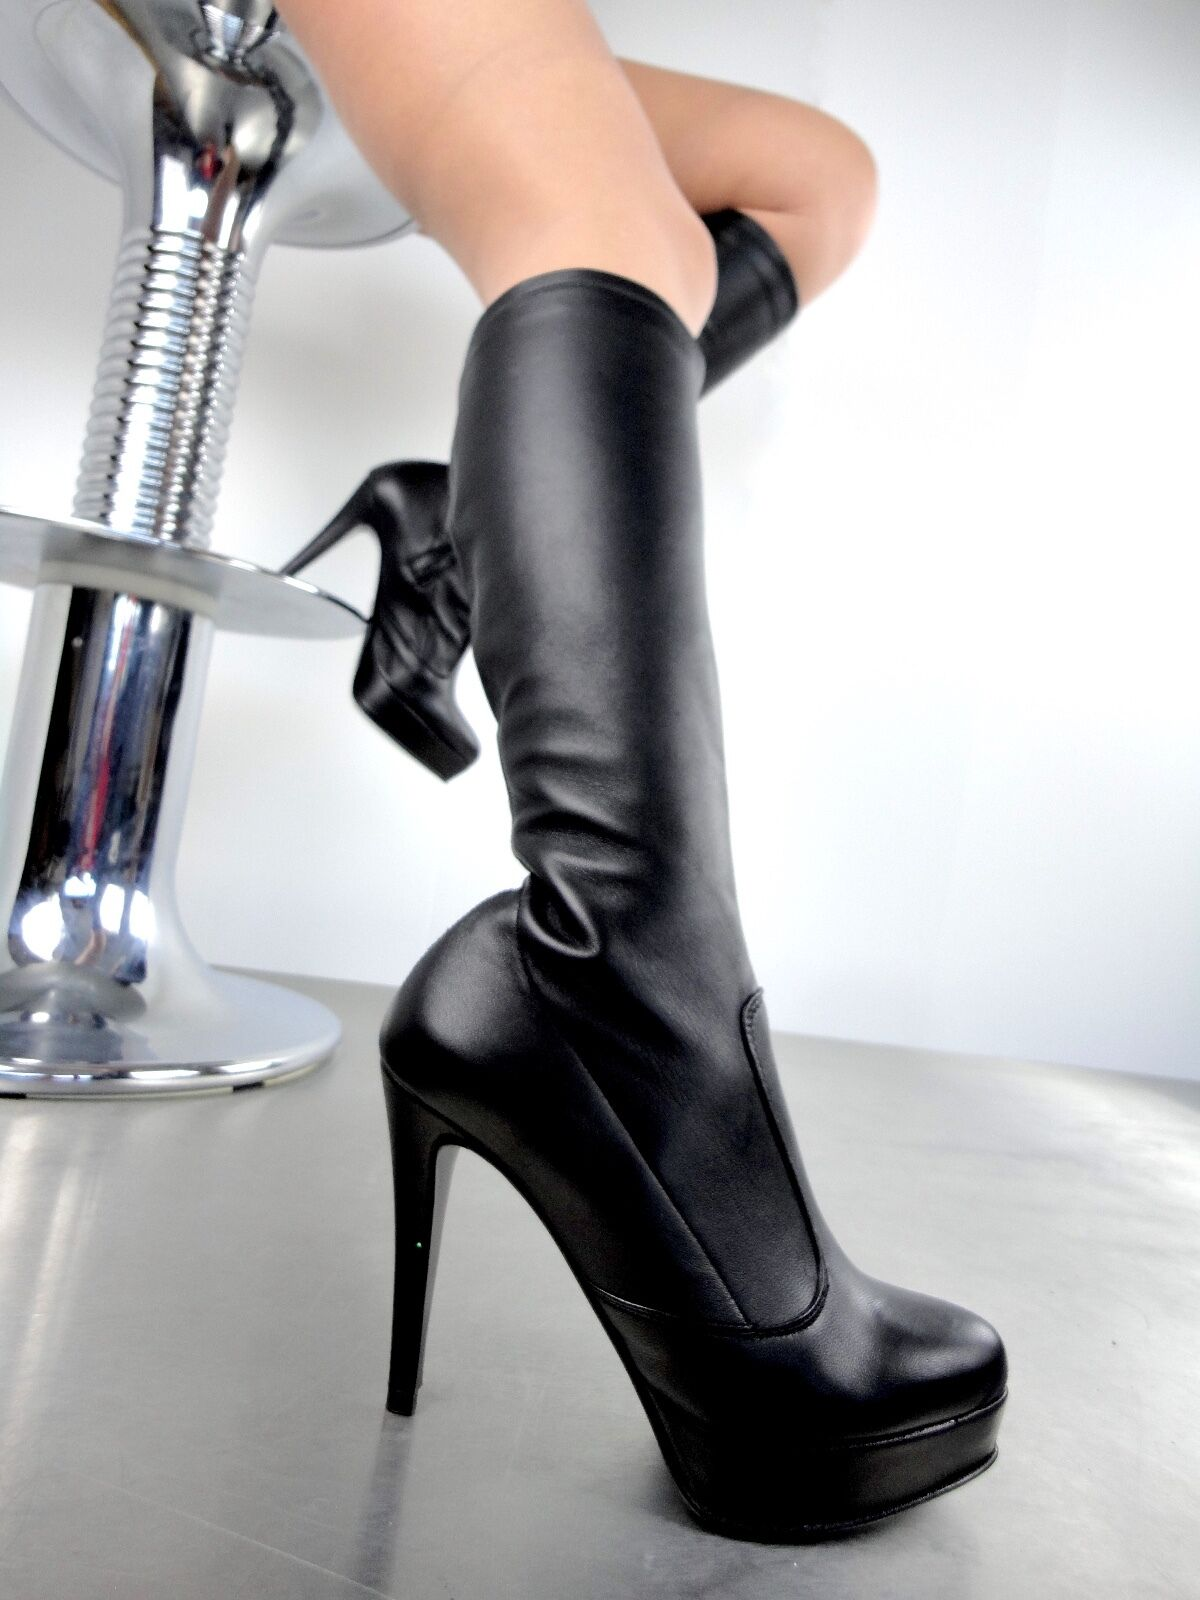 GIOHEL 2.5CM PLATFORM KNEE HIGH HEEL BOOTS STIEFEL STRETCH BLACK LEATHER 35